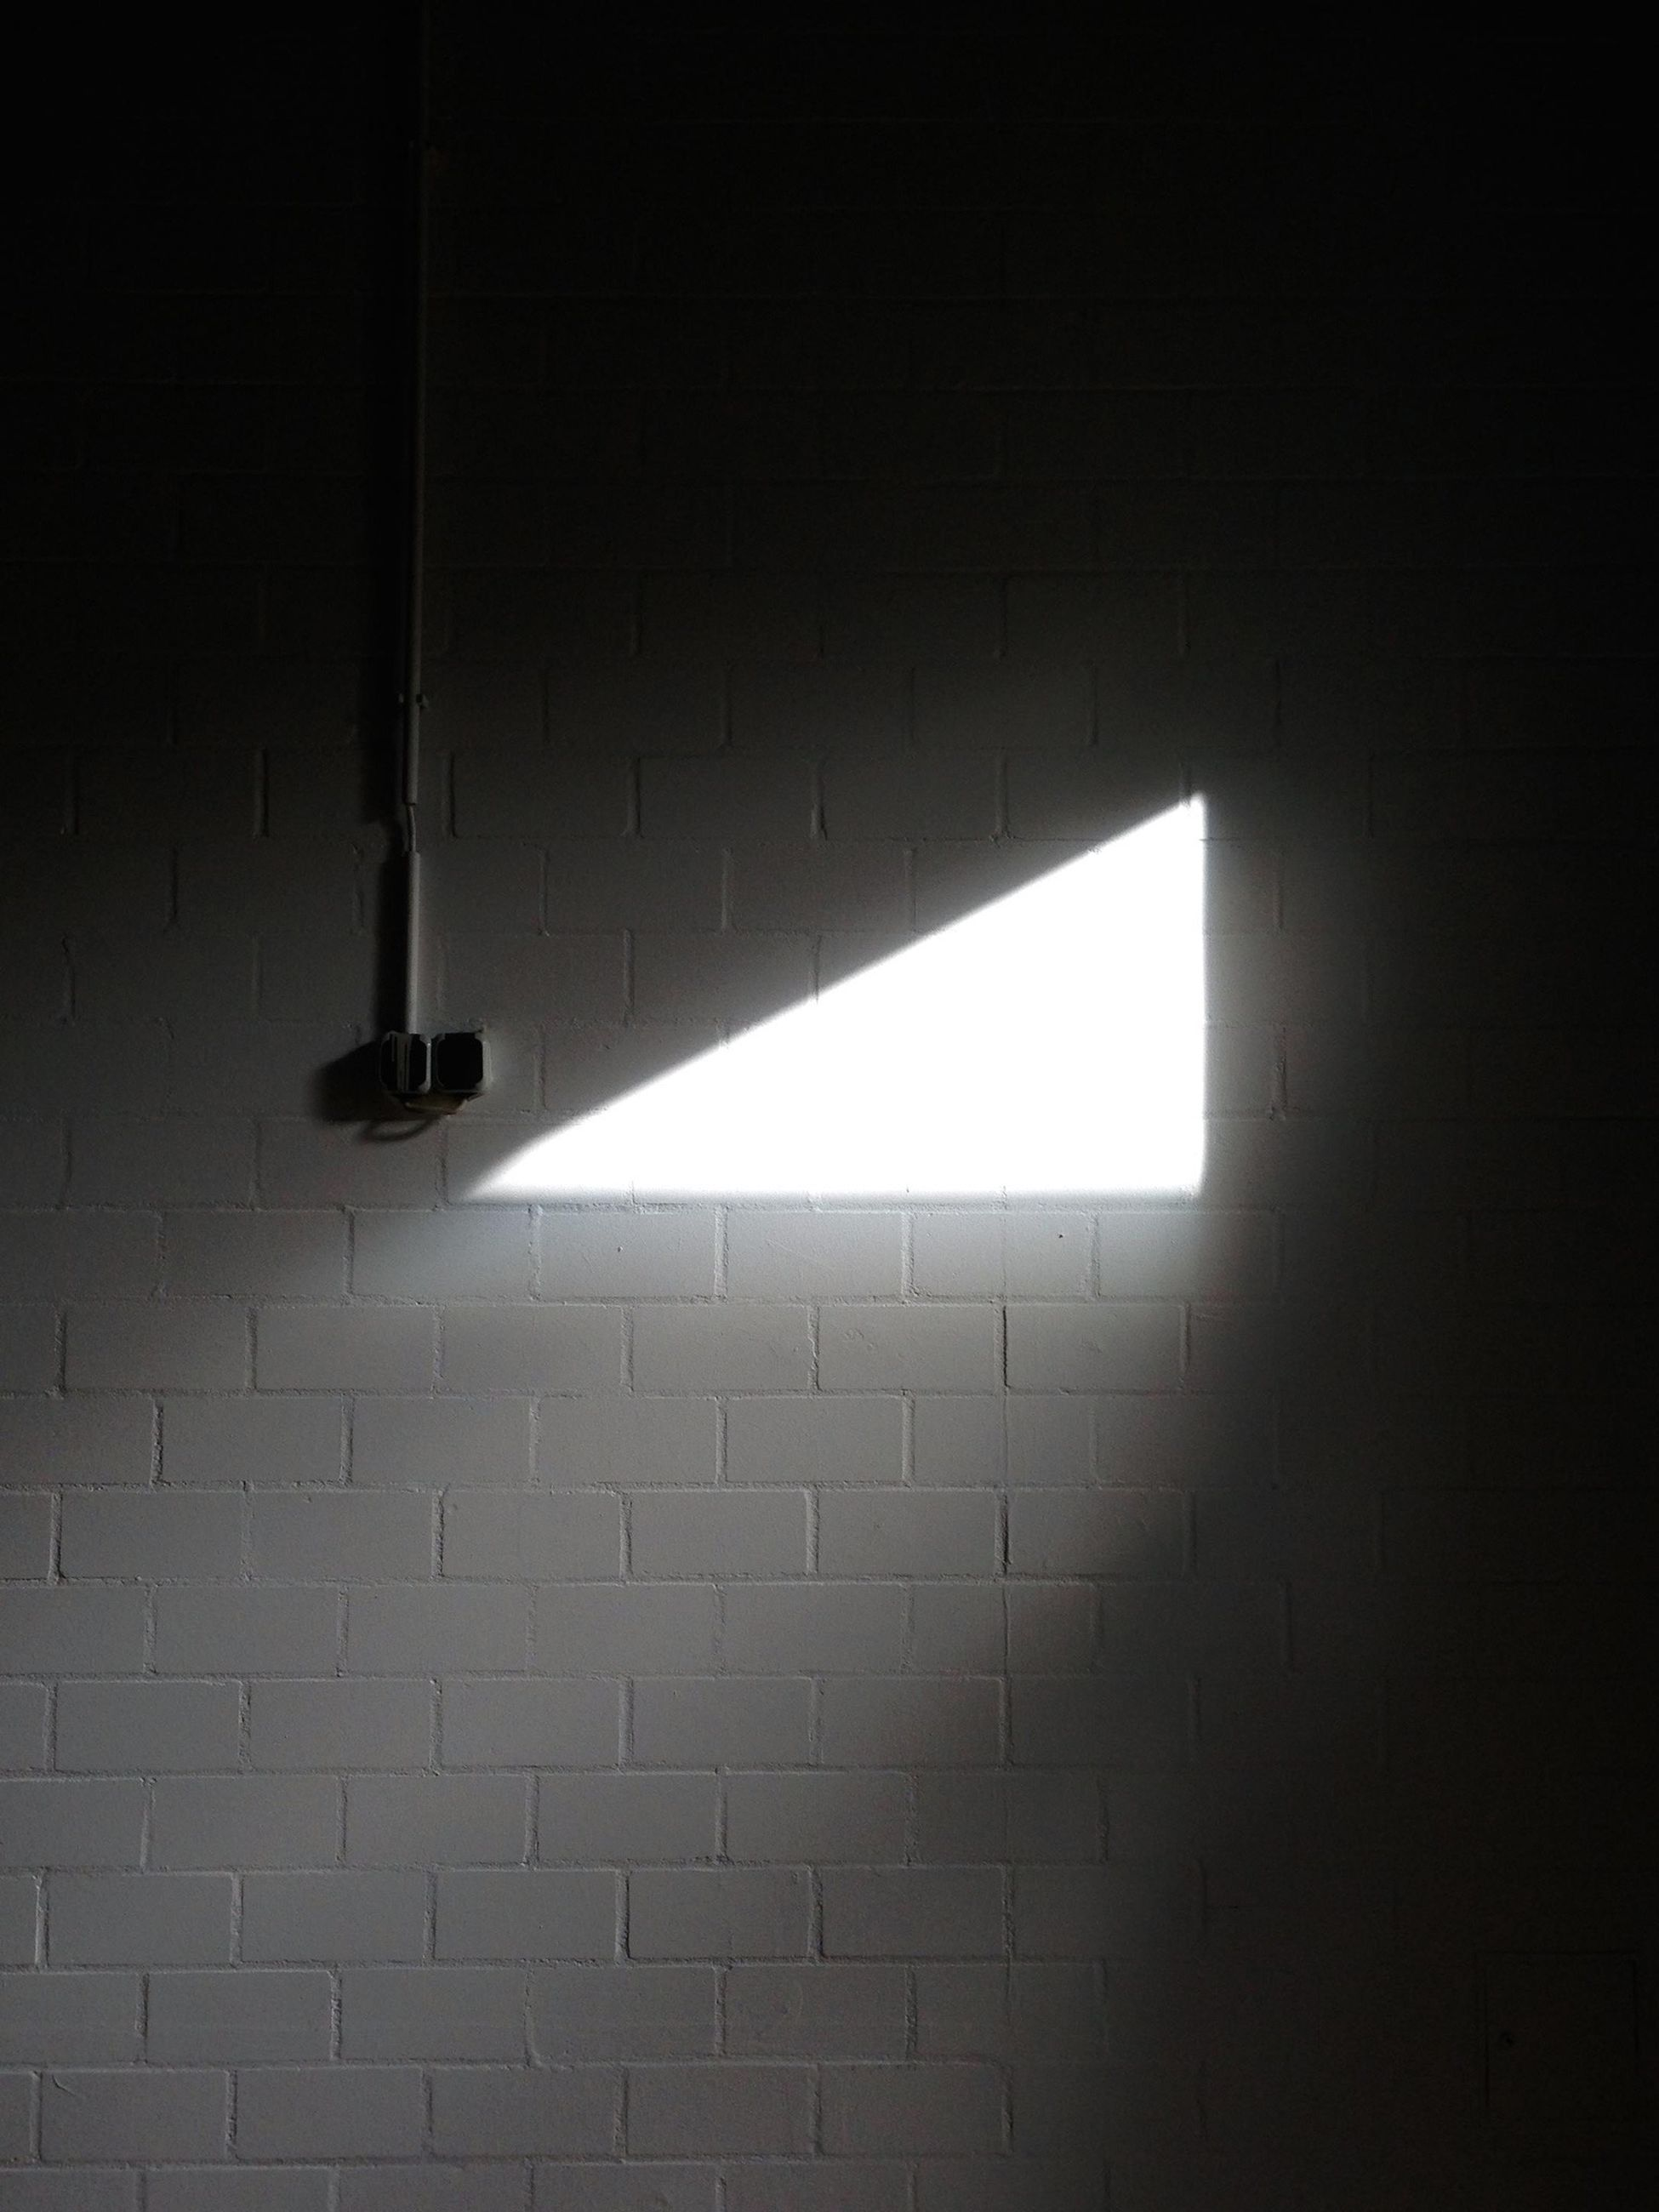 wall - building feature, illuminated, brick, brick wall, architecture, wall, lighting equipment, no people, built structure, indoors, sunlight, glowing, low angle view, electric light, light, light - natural phenomenon, hanging, pattern, electricity, ceiling, fluorescent light, electric lamp, light fixture